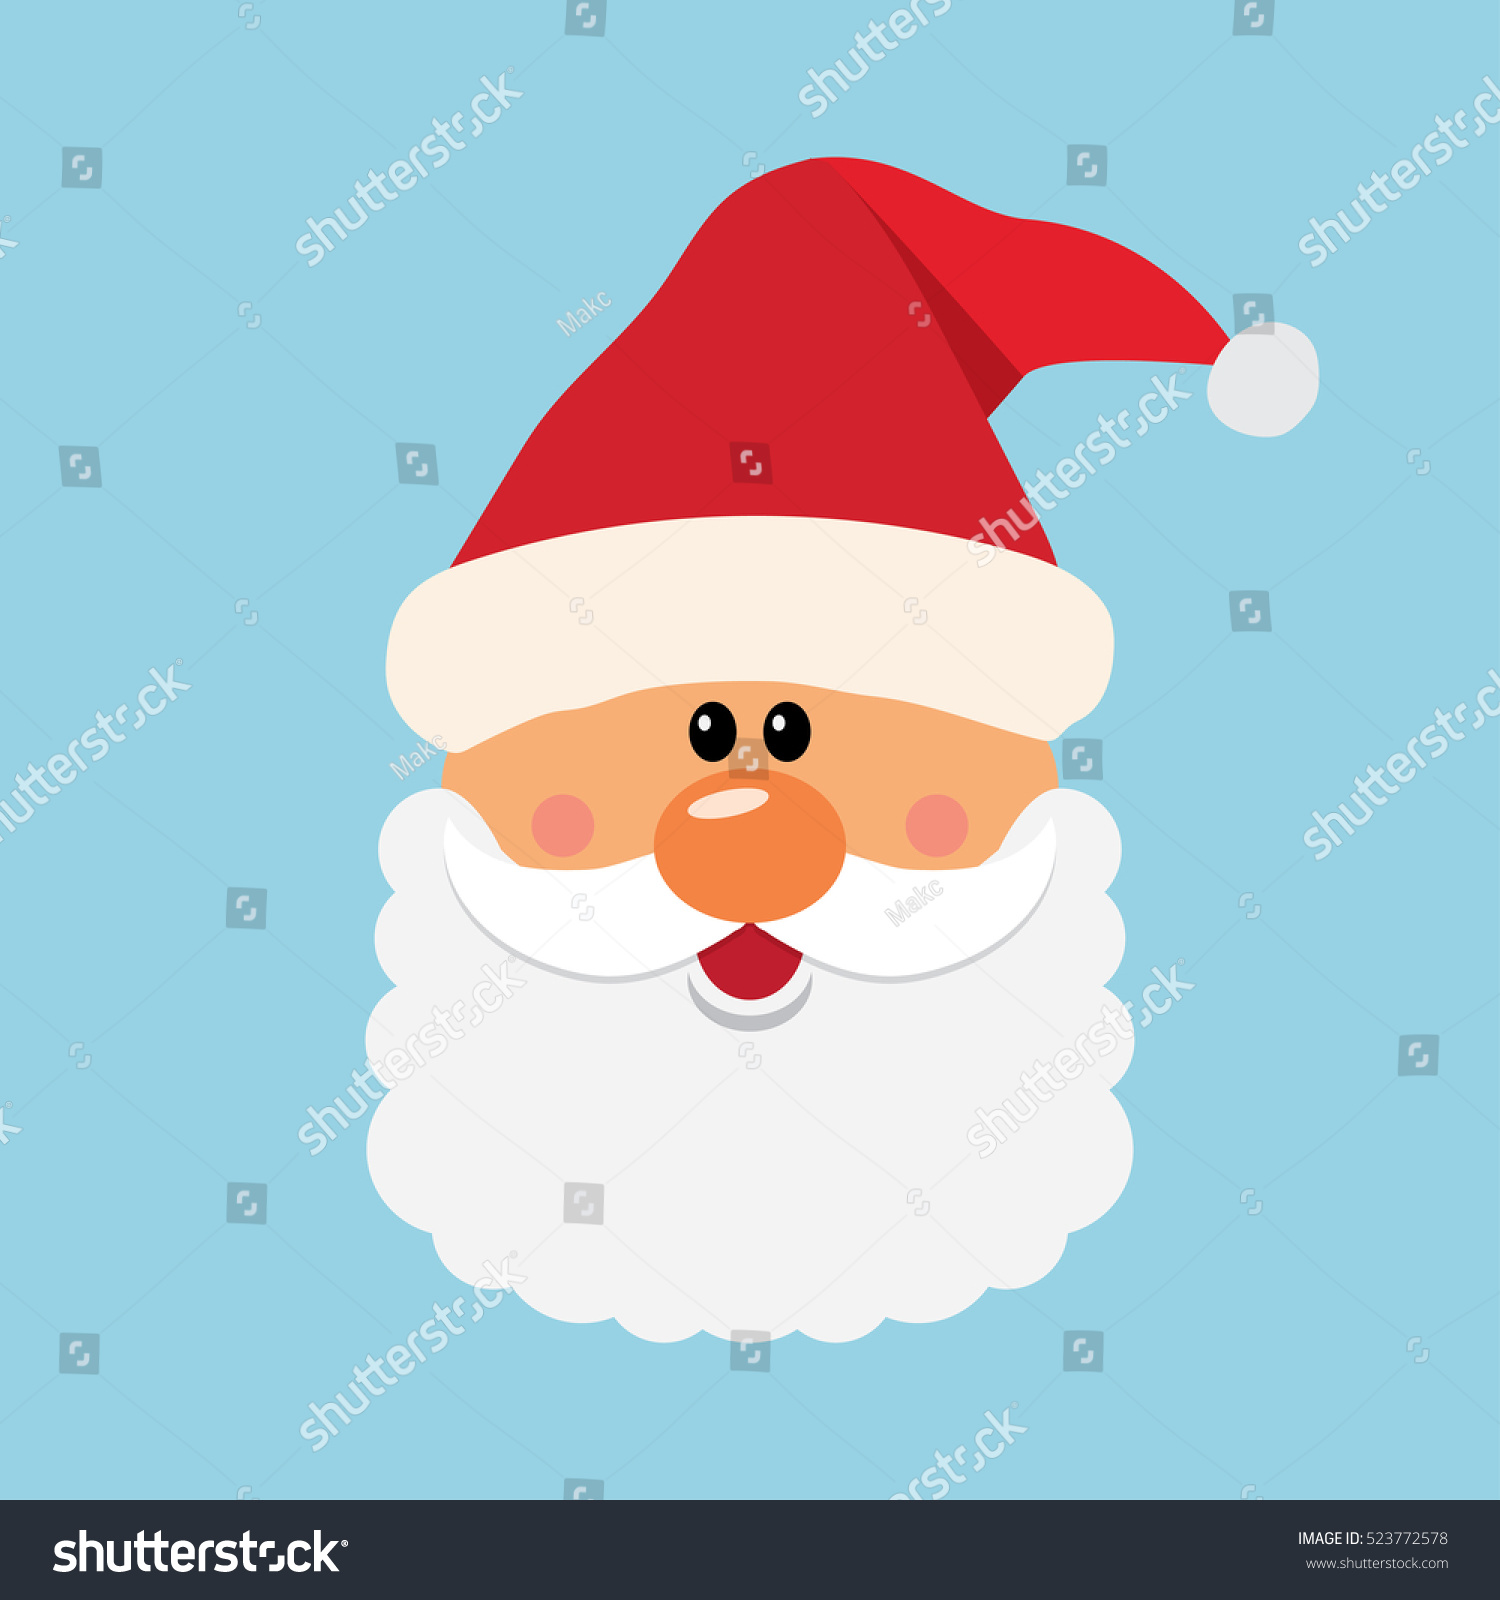 Santa Claus face, icon vector illustration. Christmas card template ...